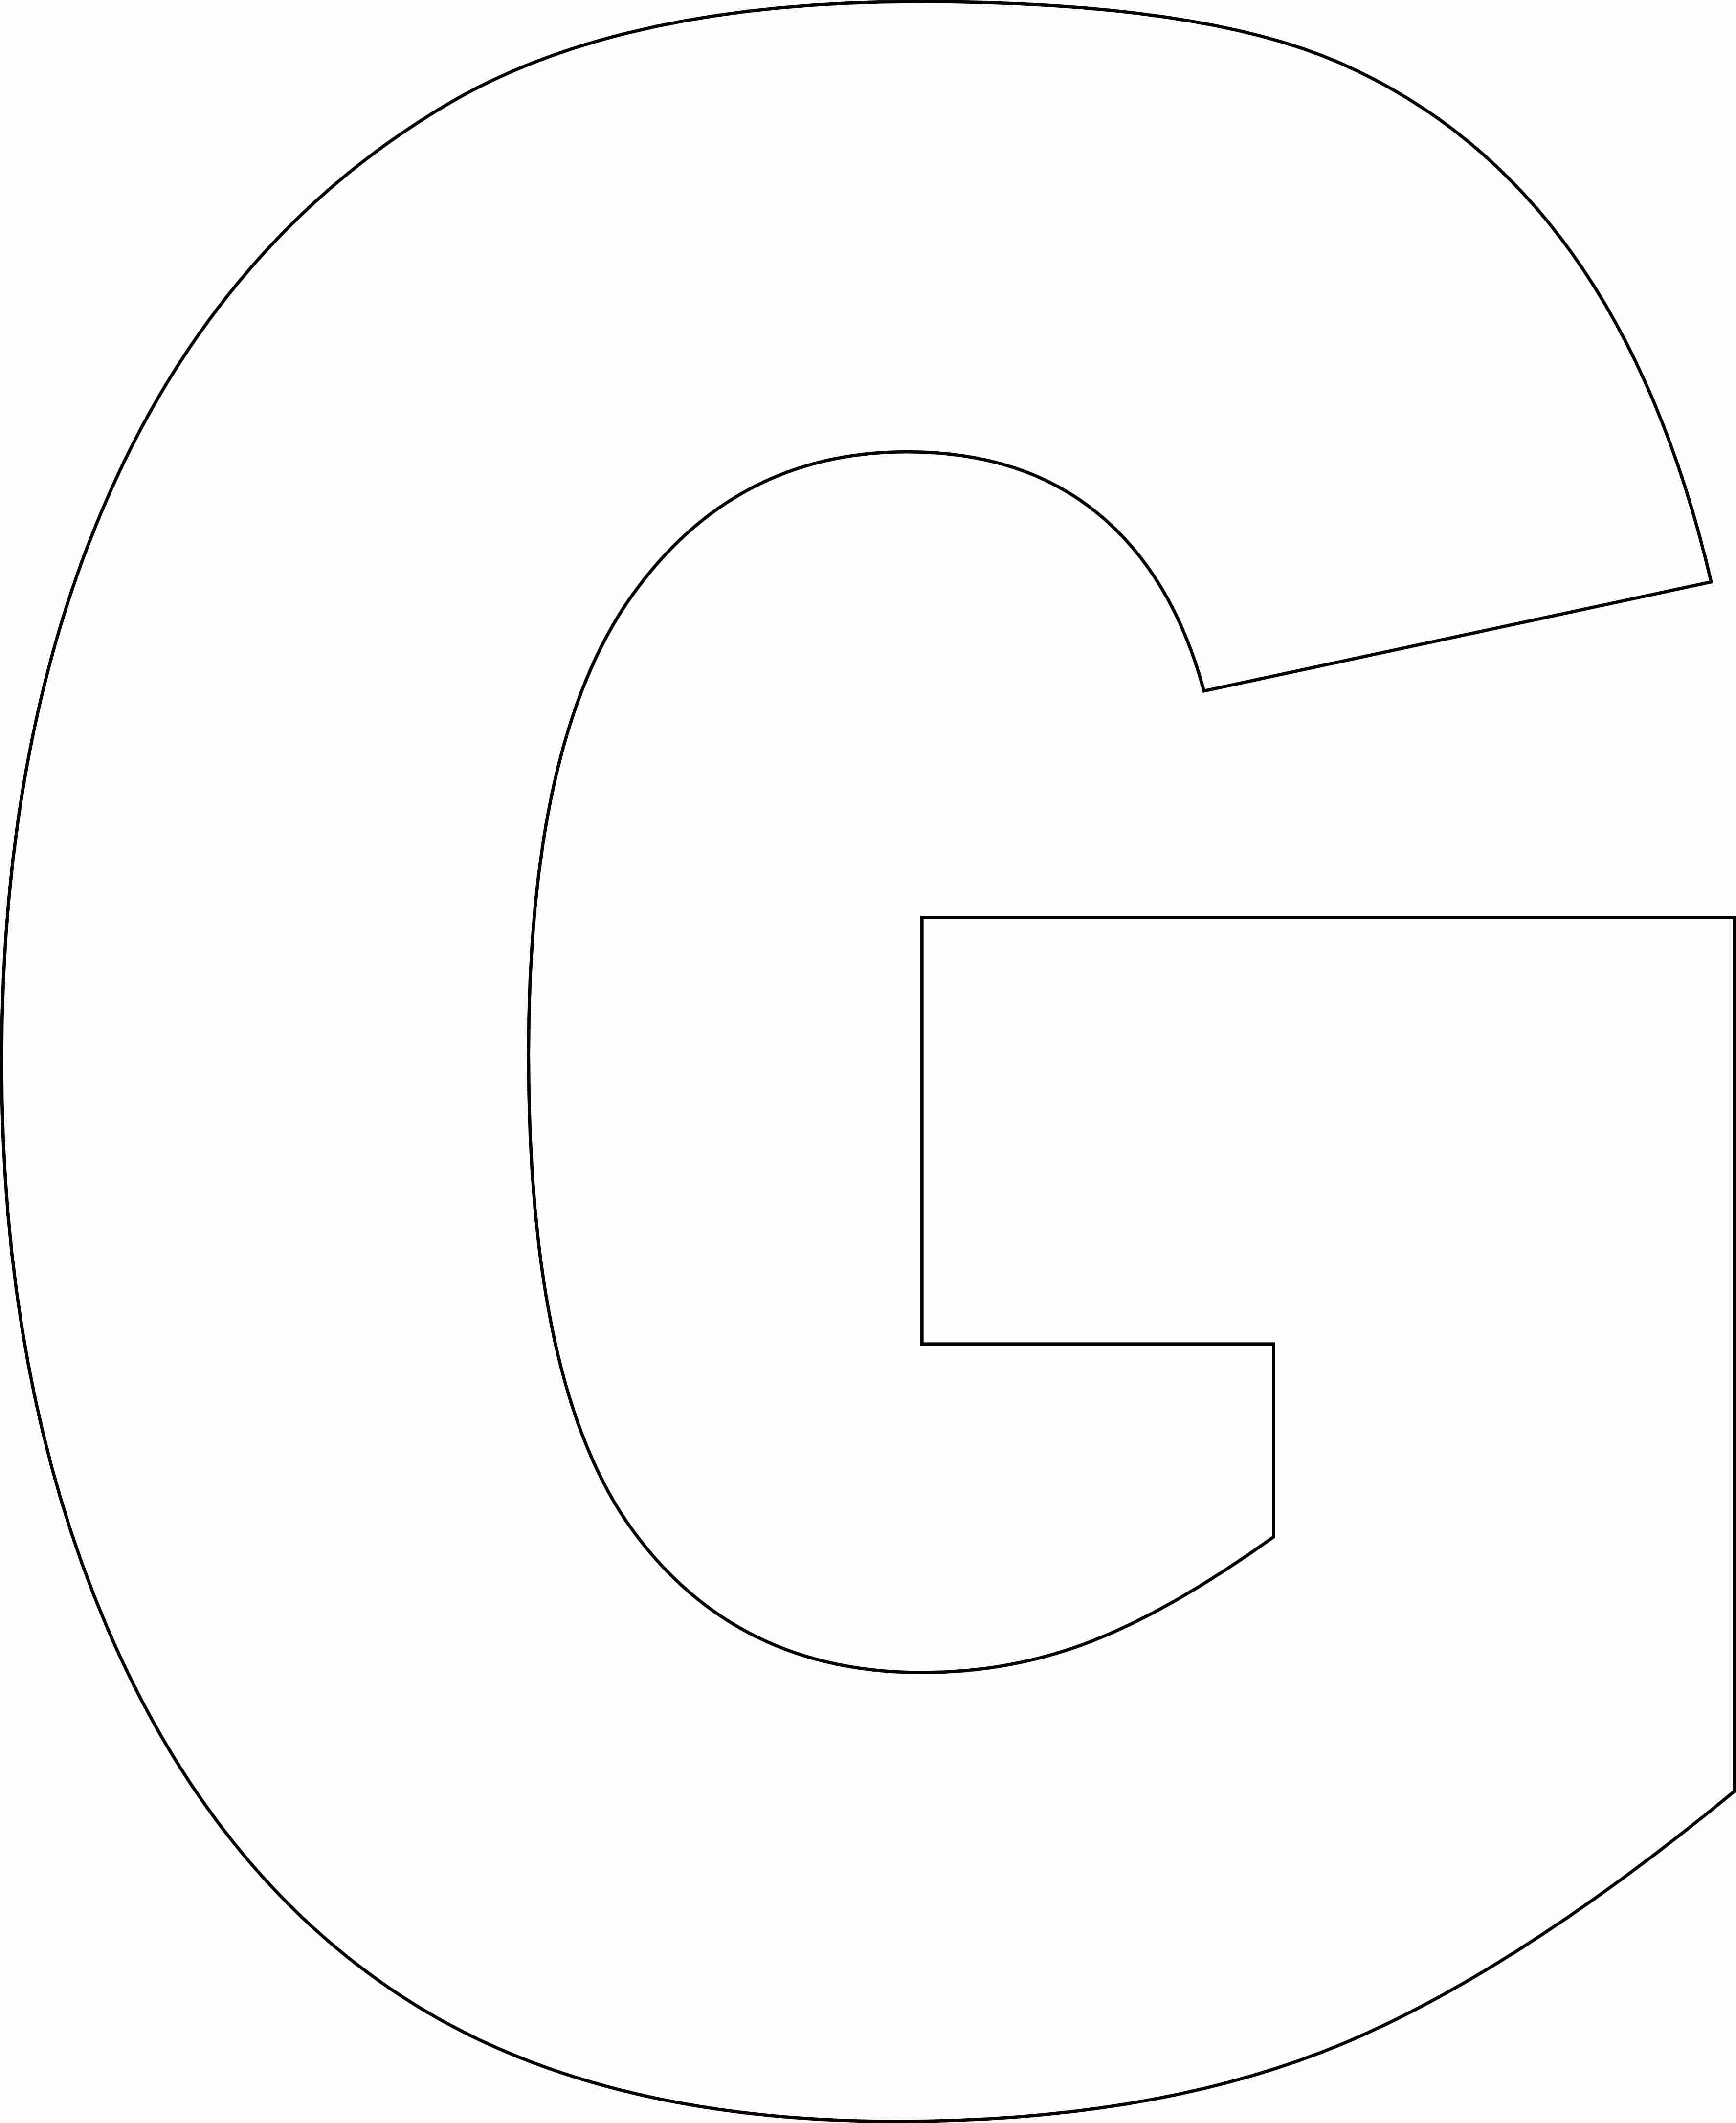 lowercase letter g template  Free Printable Alphabet Template Upper Case